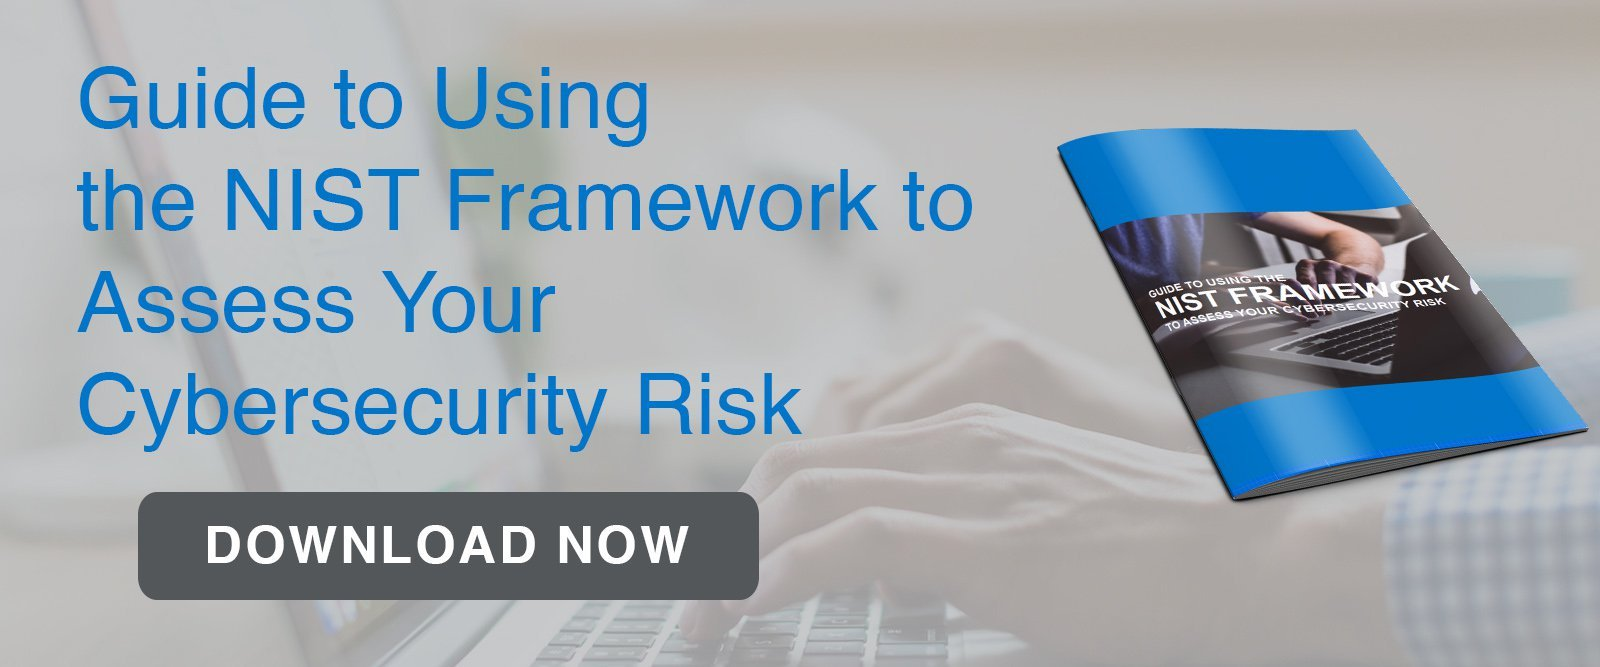 nist framework assess cybersecurity